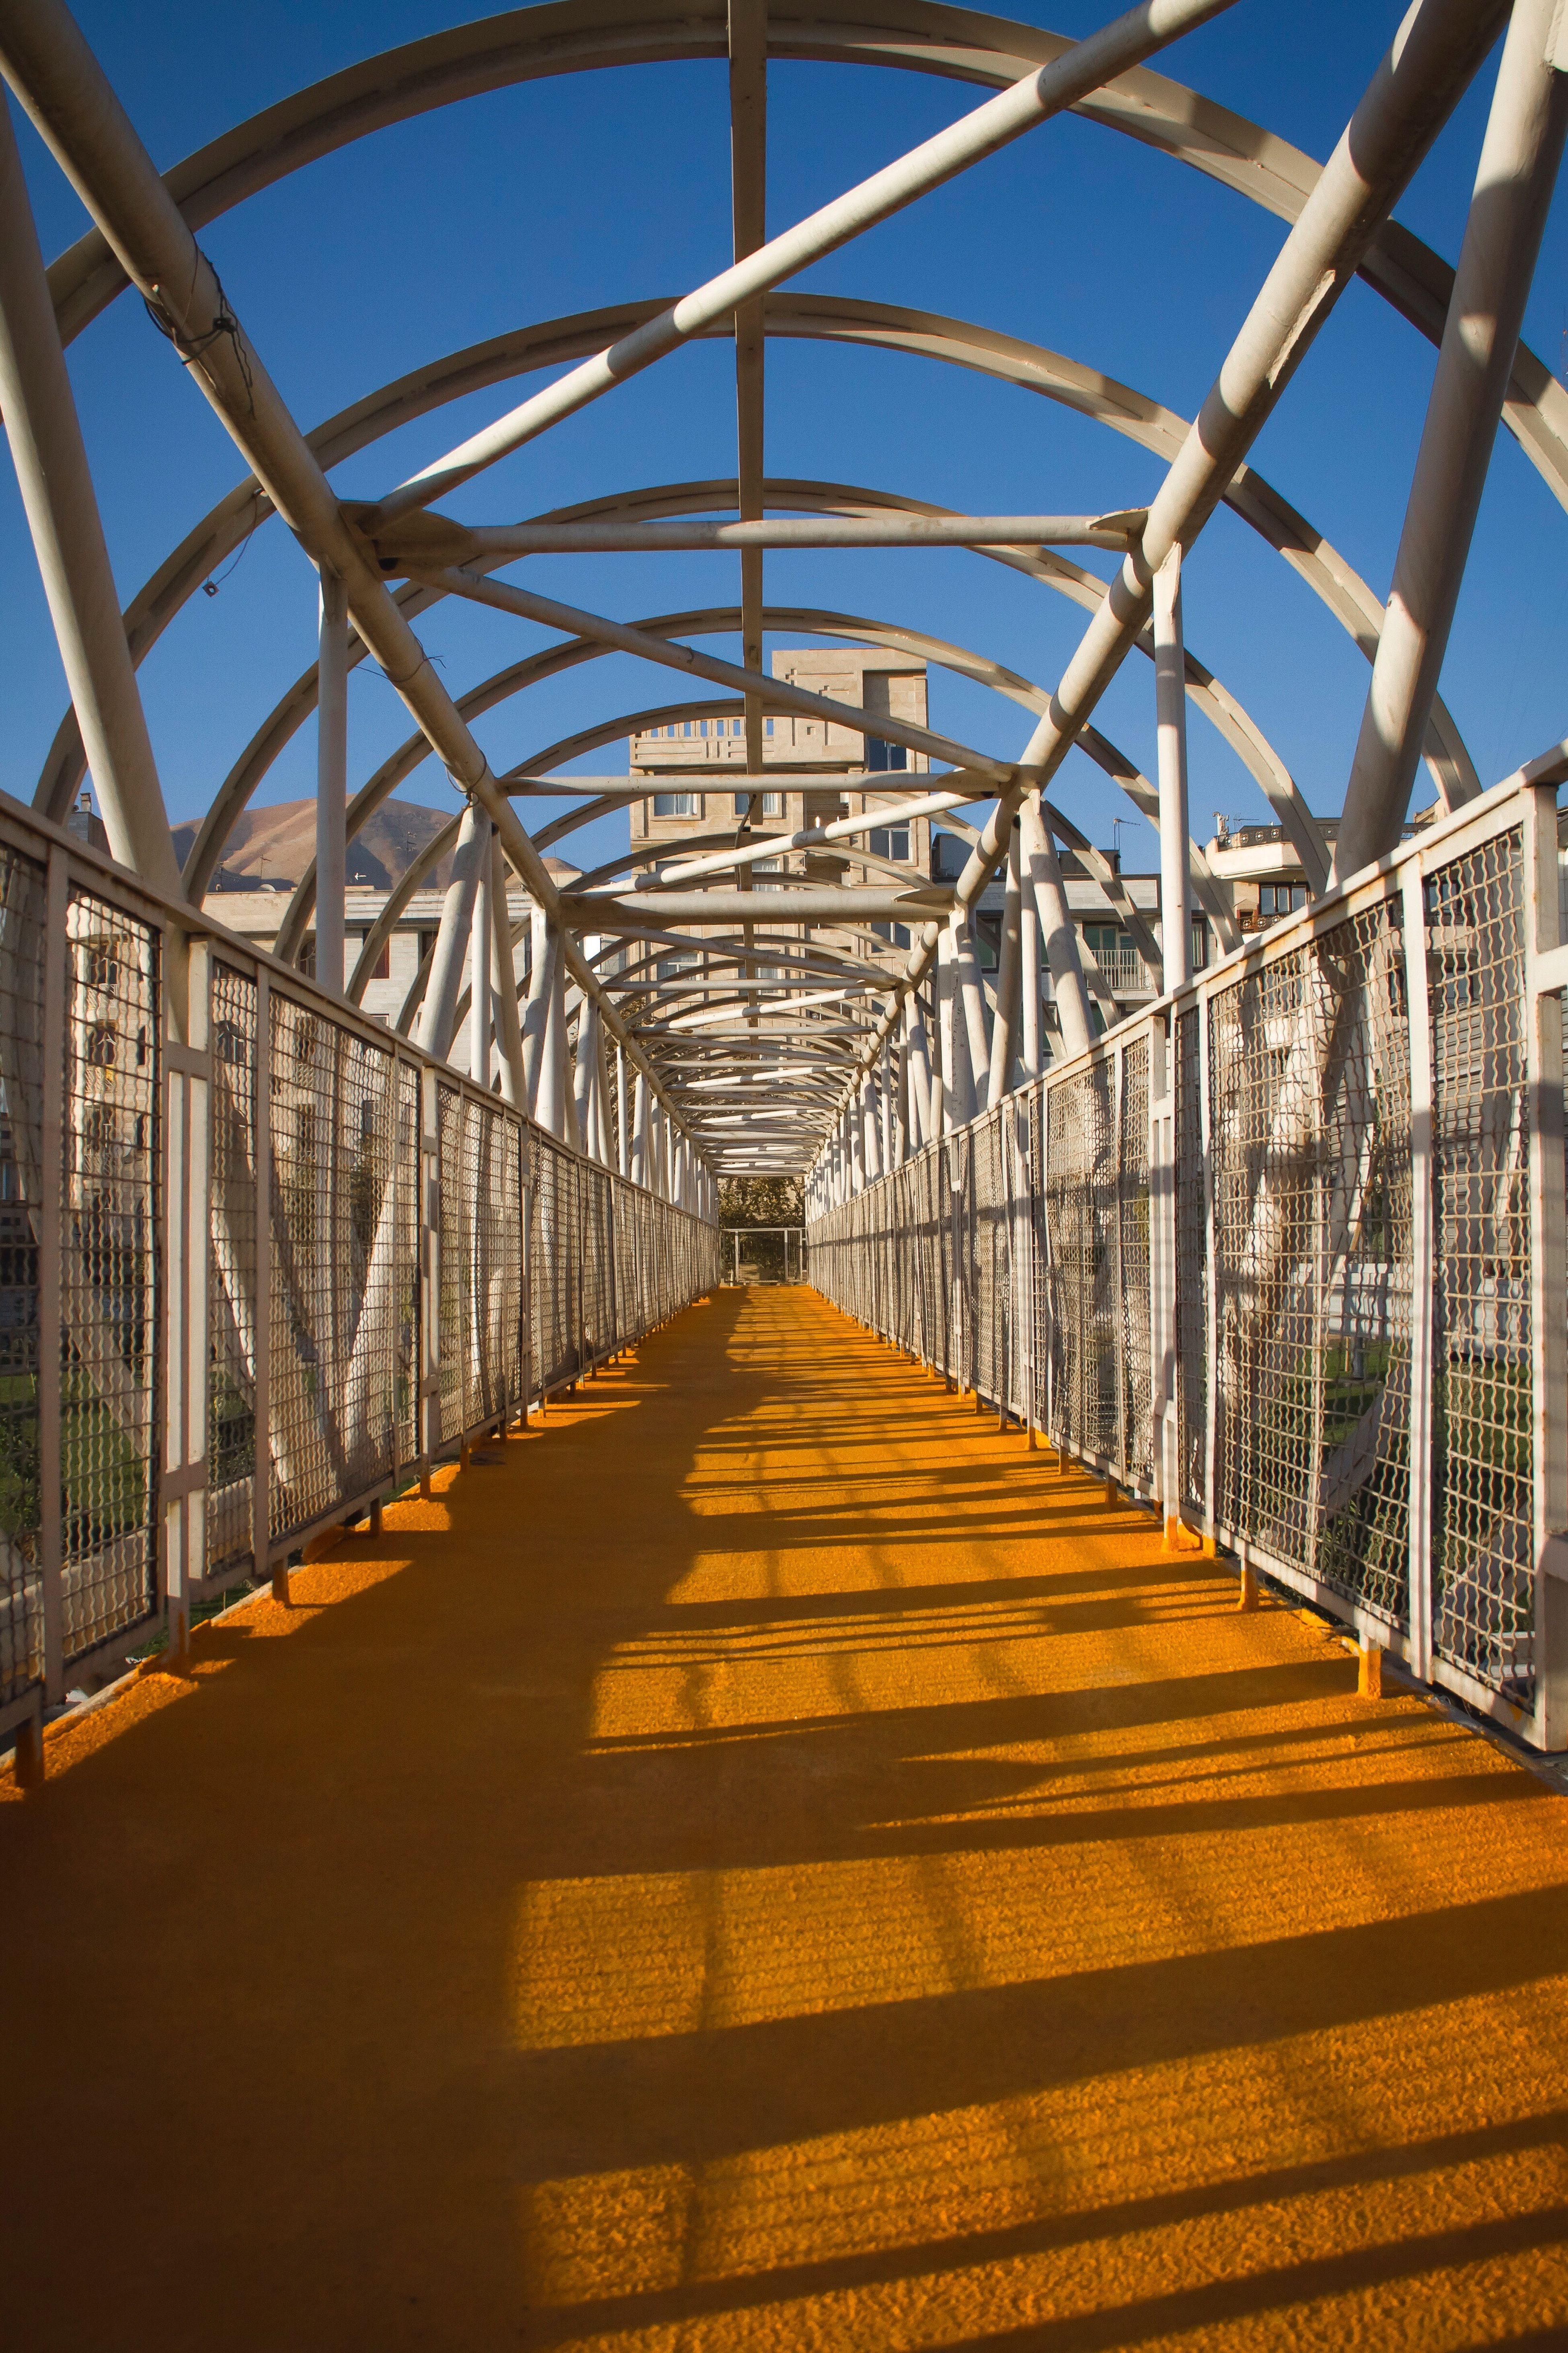 The Way Forward Clear Sky Bridge Colors And Patterns Outdoors Orang And Blue Color Contrast